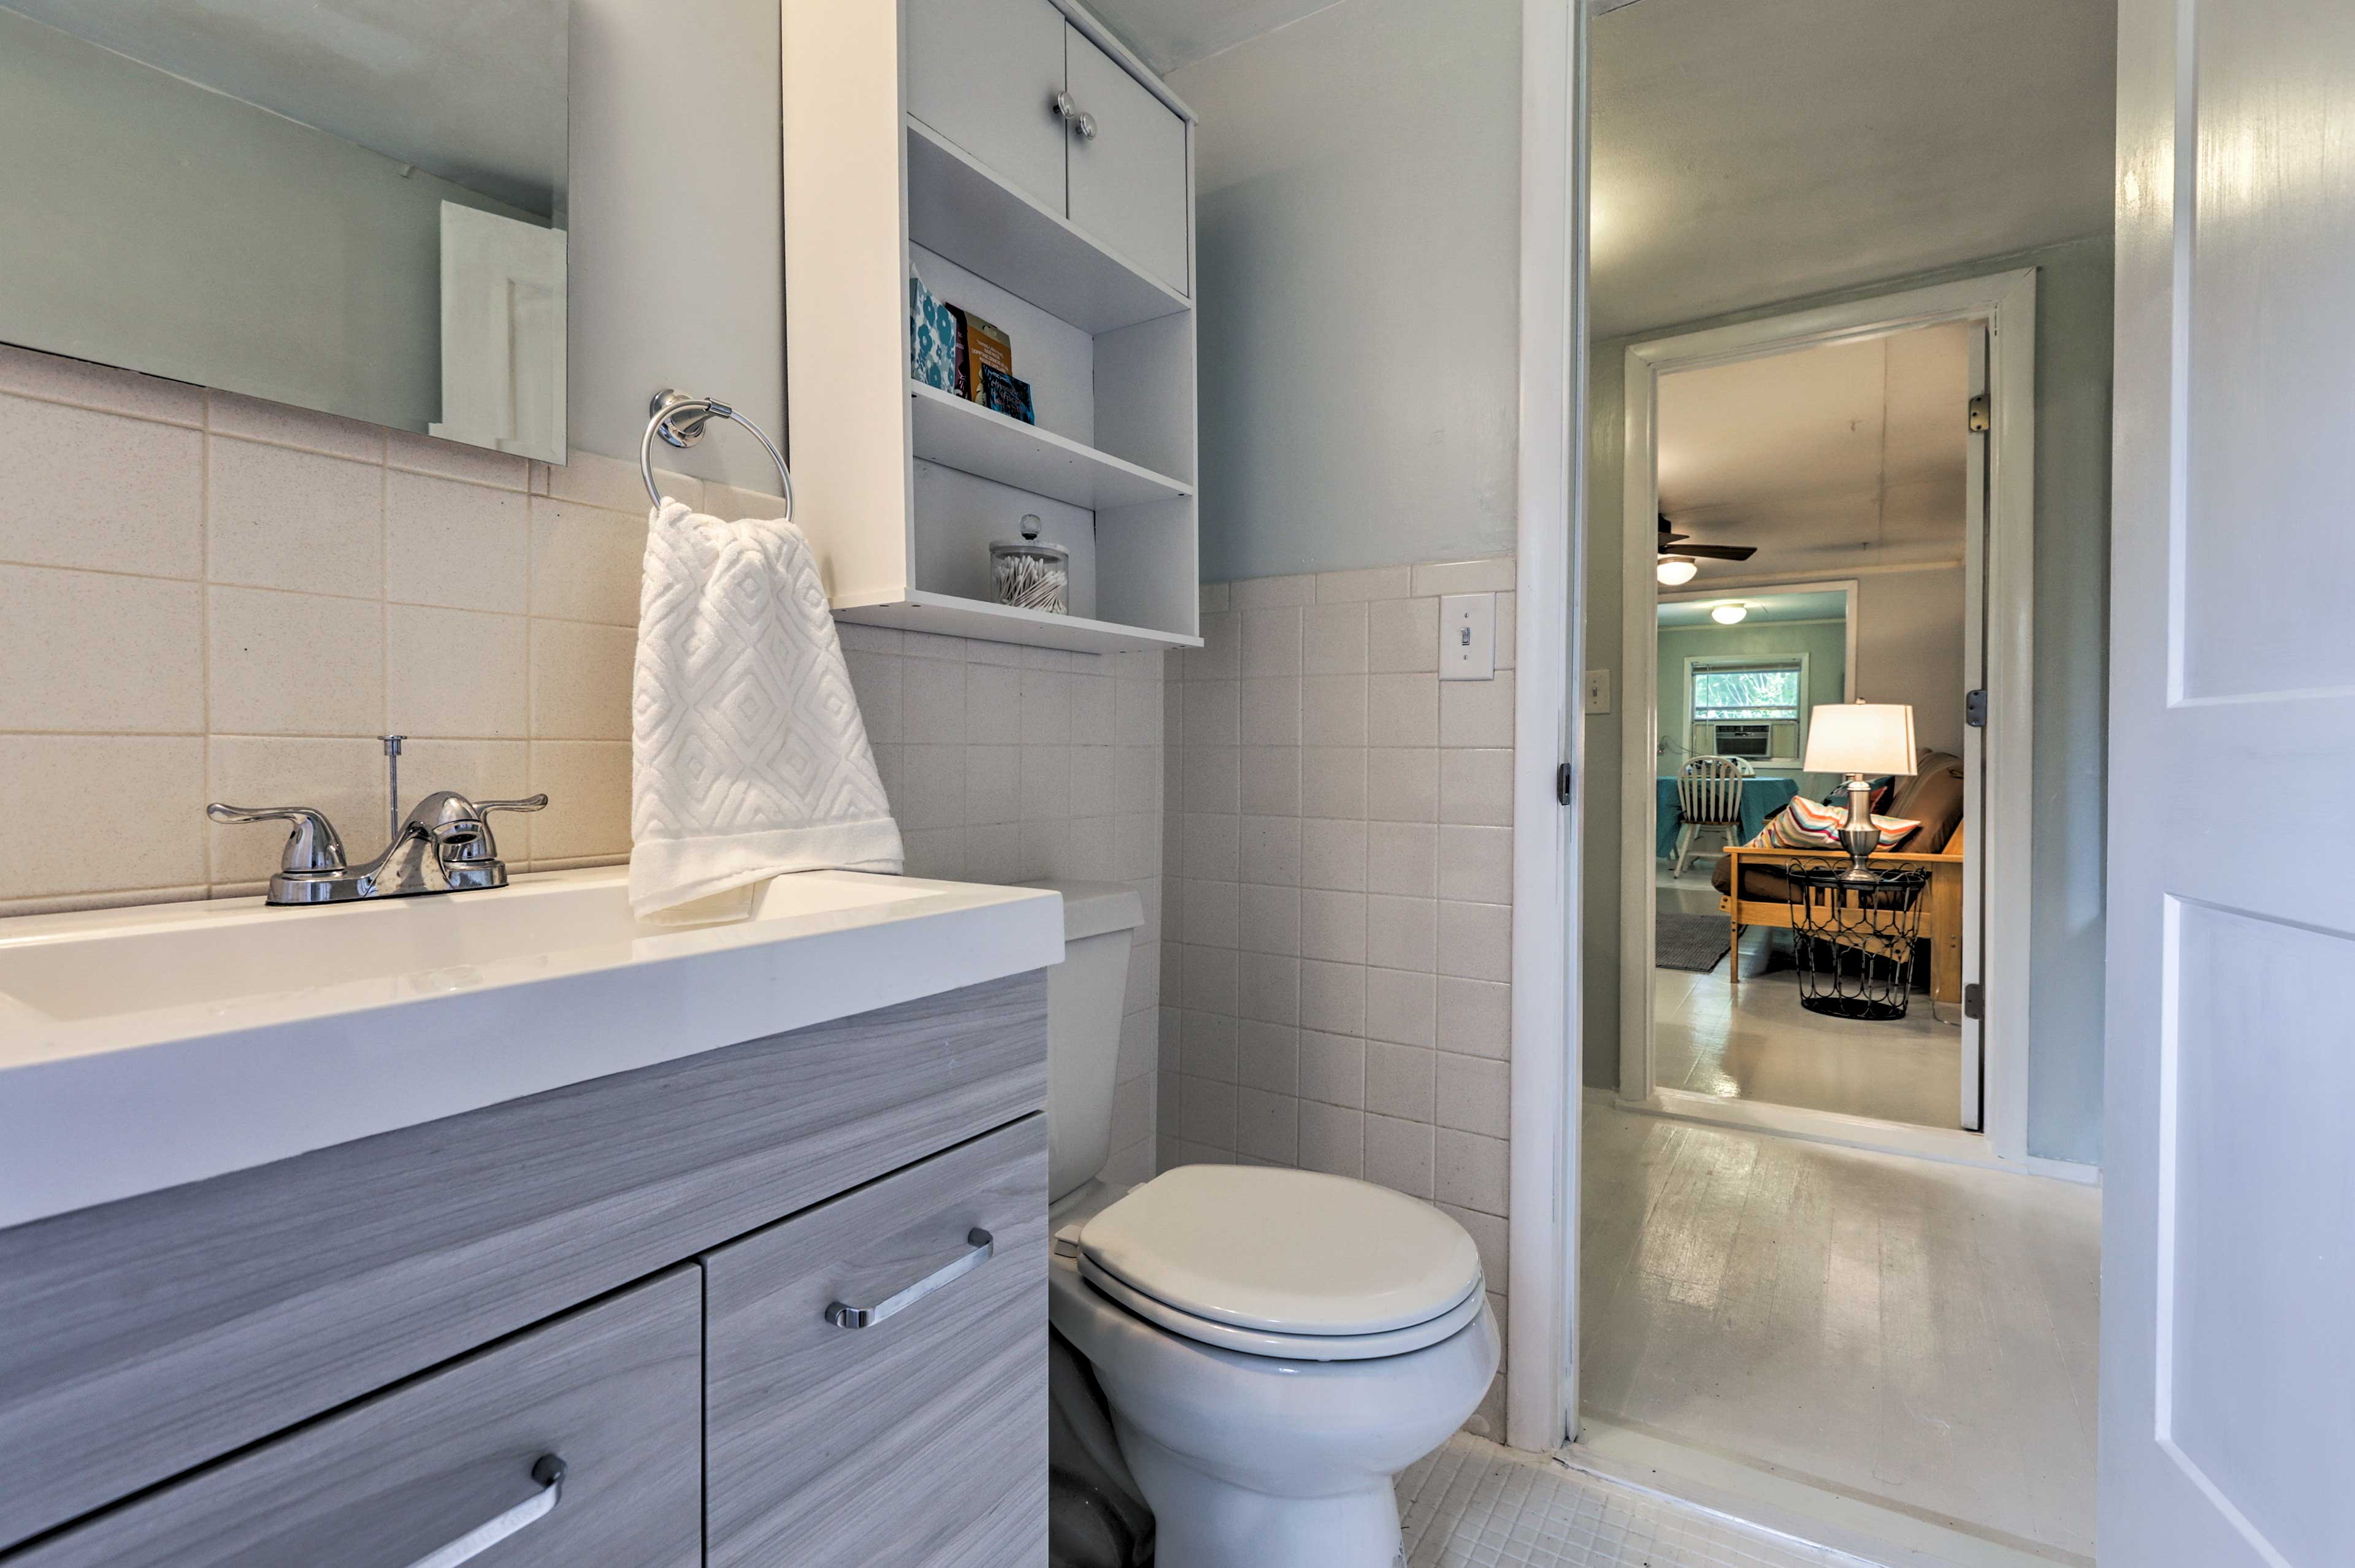 Head into the bathroom to freshen up.